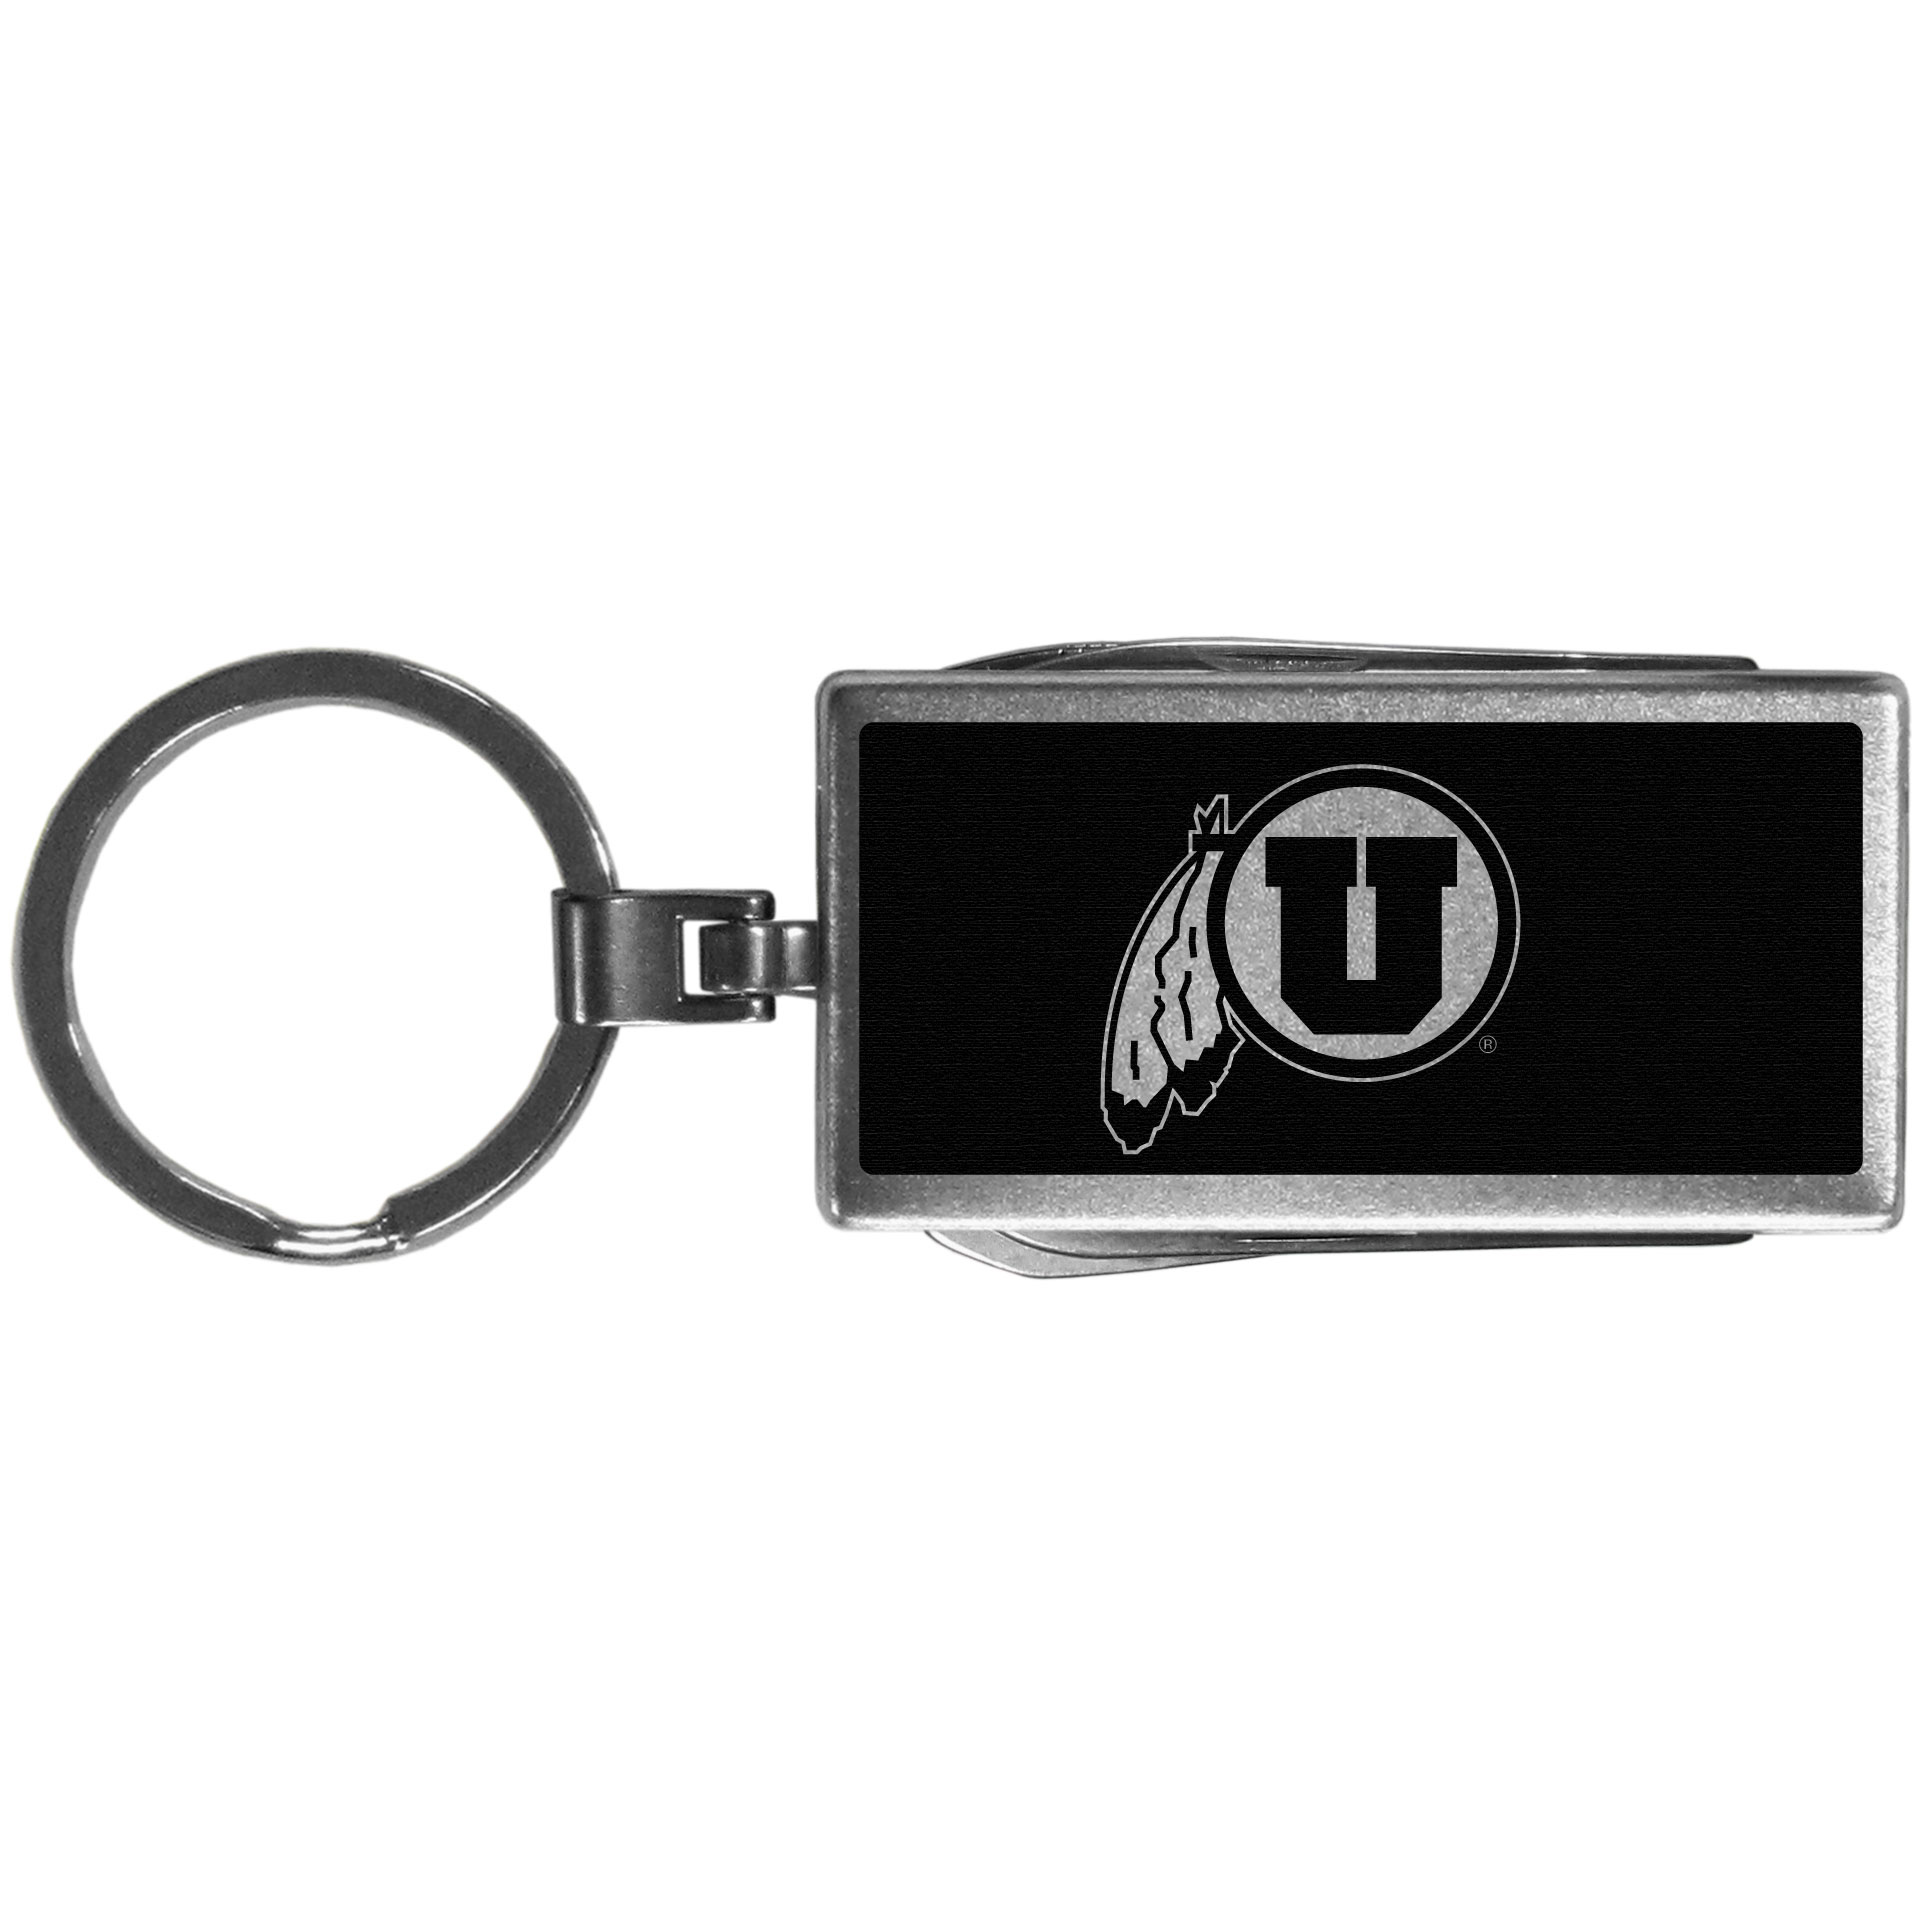 Utah Utes Multi-tool Key Chain, Black - Be the hero at the tailgate, camping, or on a Friday night with your Utah Utes Multi-Tool Keychain which comes complete with bottle opener, scissors, knife, nail file and screw driver. Be it opening a package or a beverage Siskiyou's Multi-Tool Keychain goes wherever your keys do. The keychain hangs at 4 inches long when closed.